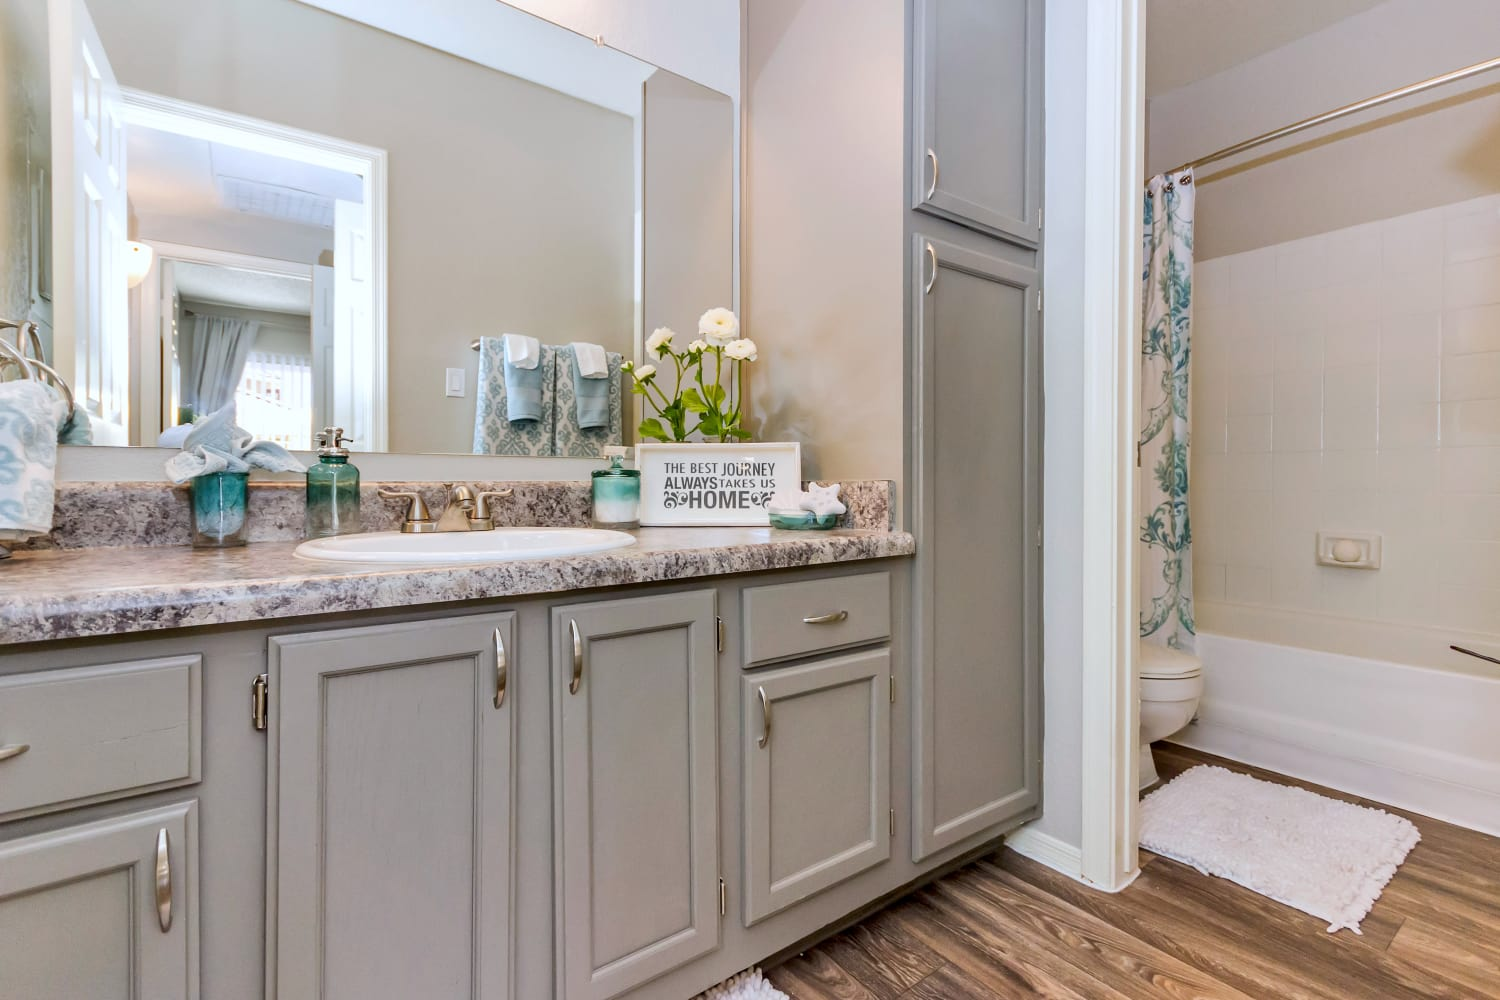 Bathroom with hardwood floors at Alcove at the Islands in Gilbert, Arizona